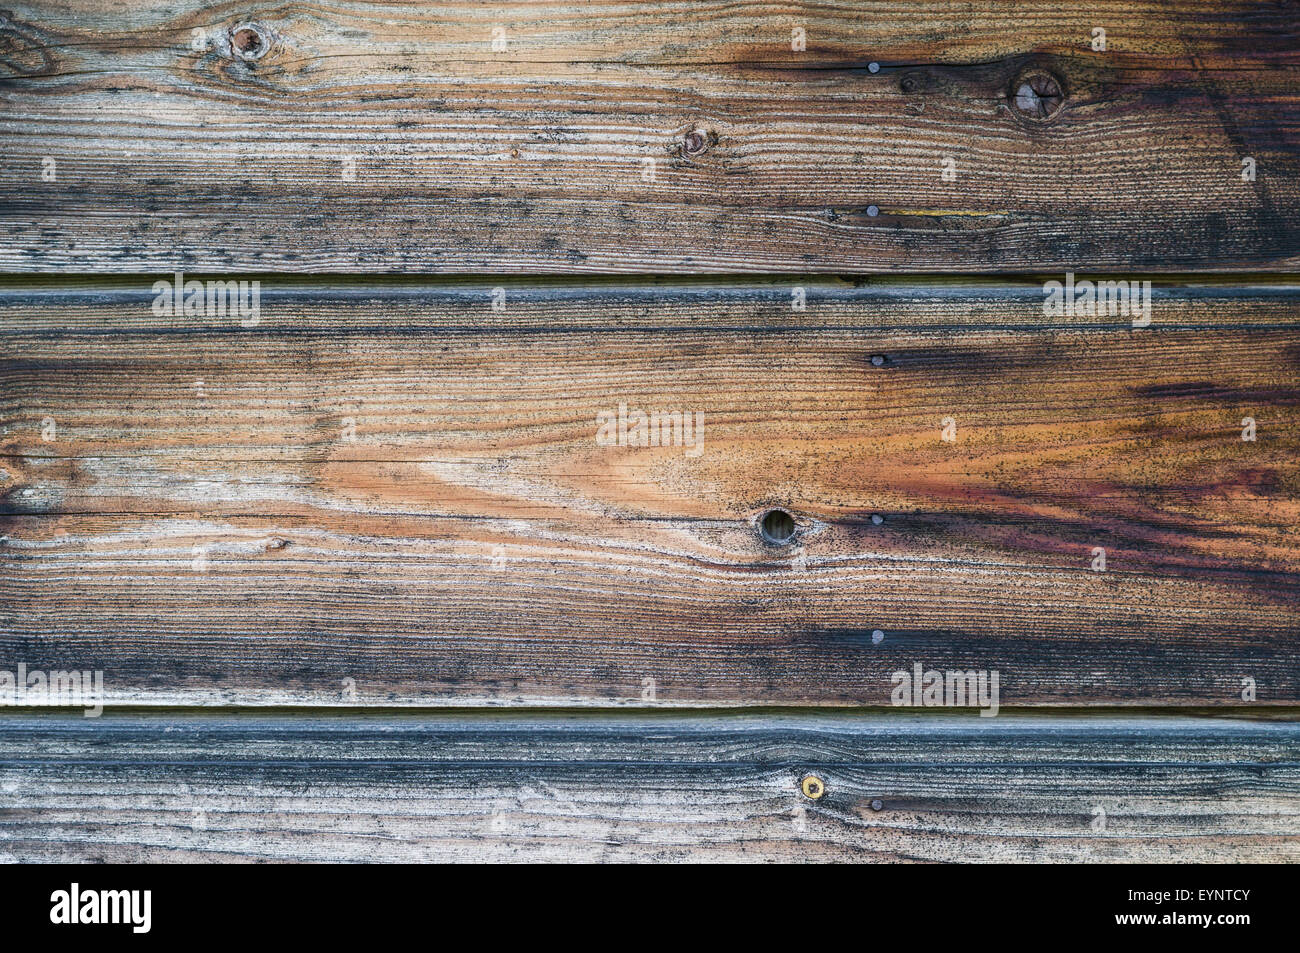 Holzwand Textur Wooden Nails Brown Texture Stockfotos And Wooden Nails Brown